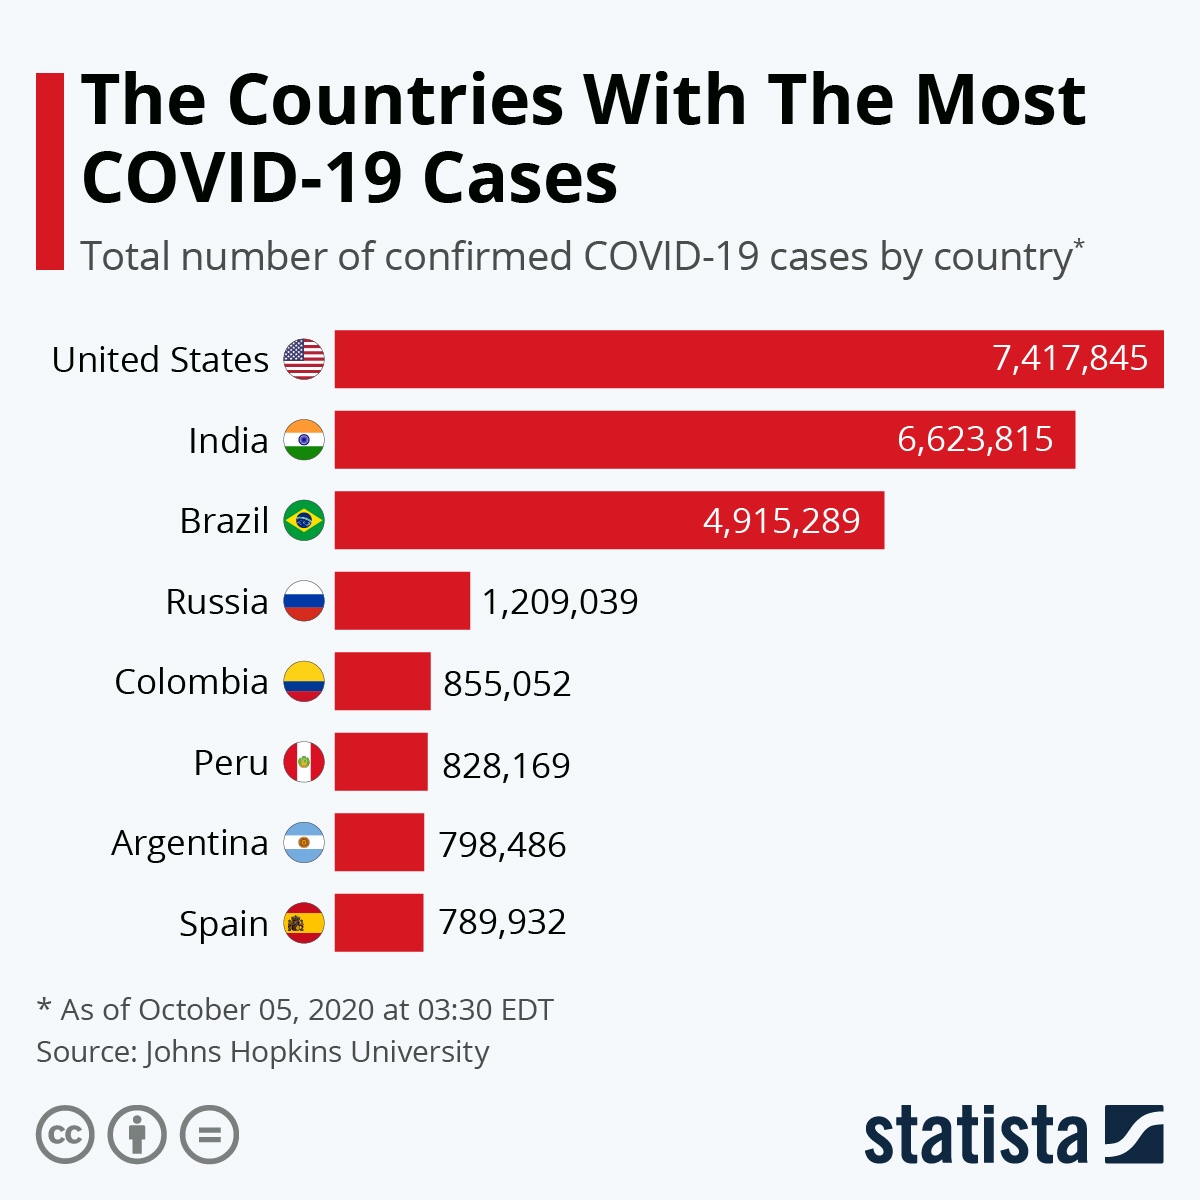 The Countries Most Hit by COVID-19